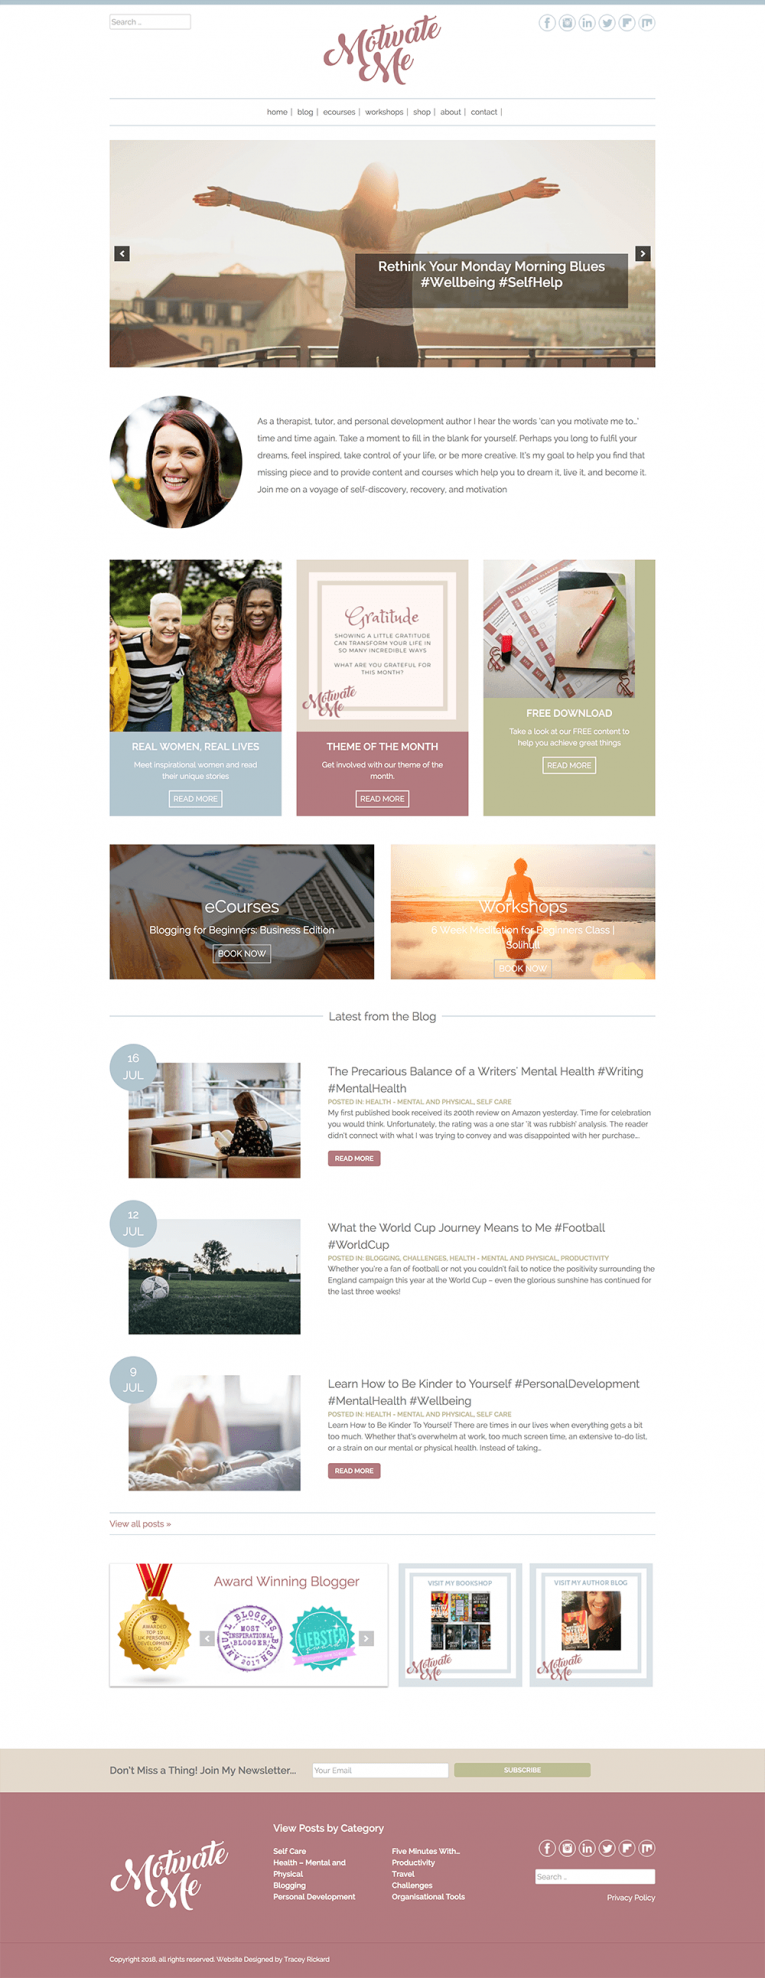 Motivate me Academy Home Page Design